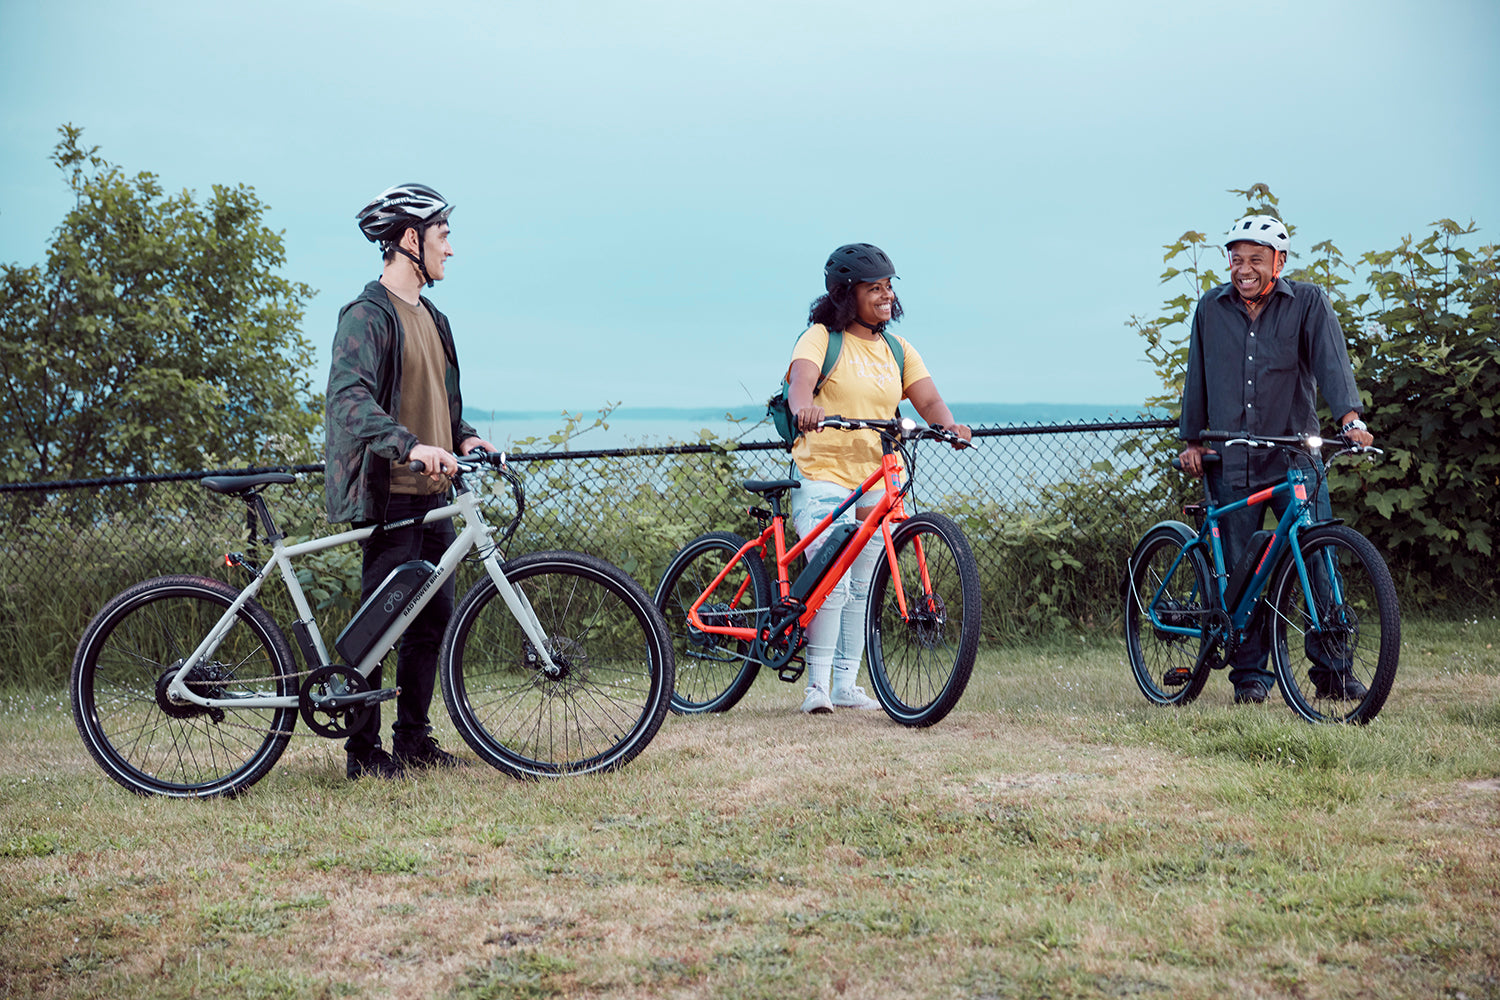 Three friends share moment after completing a ride on their RadMission electric metro bikes.